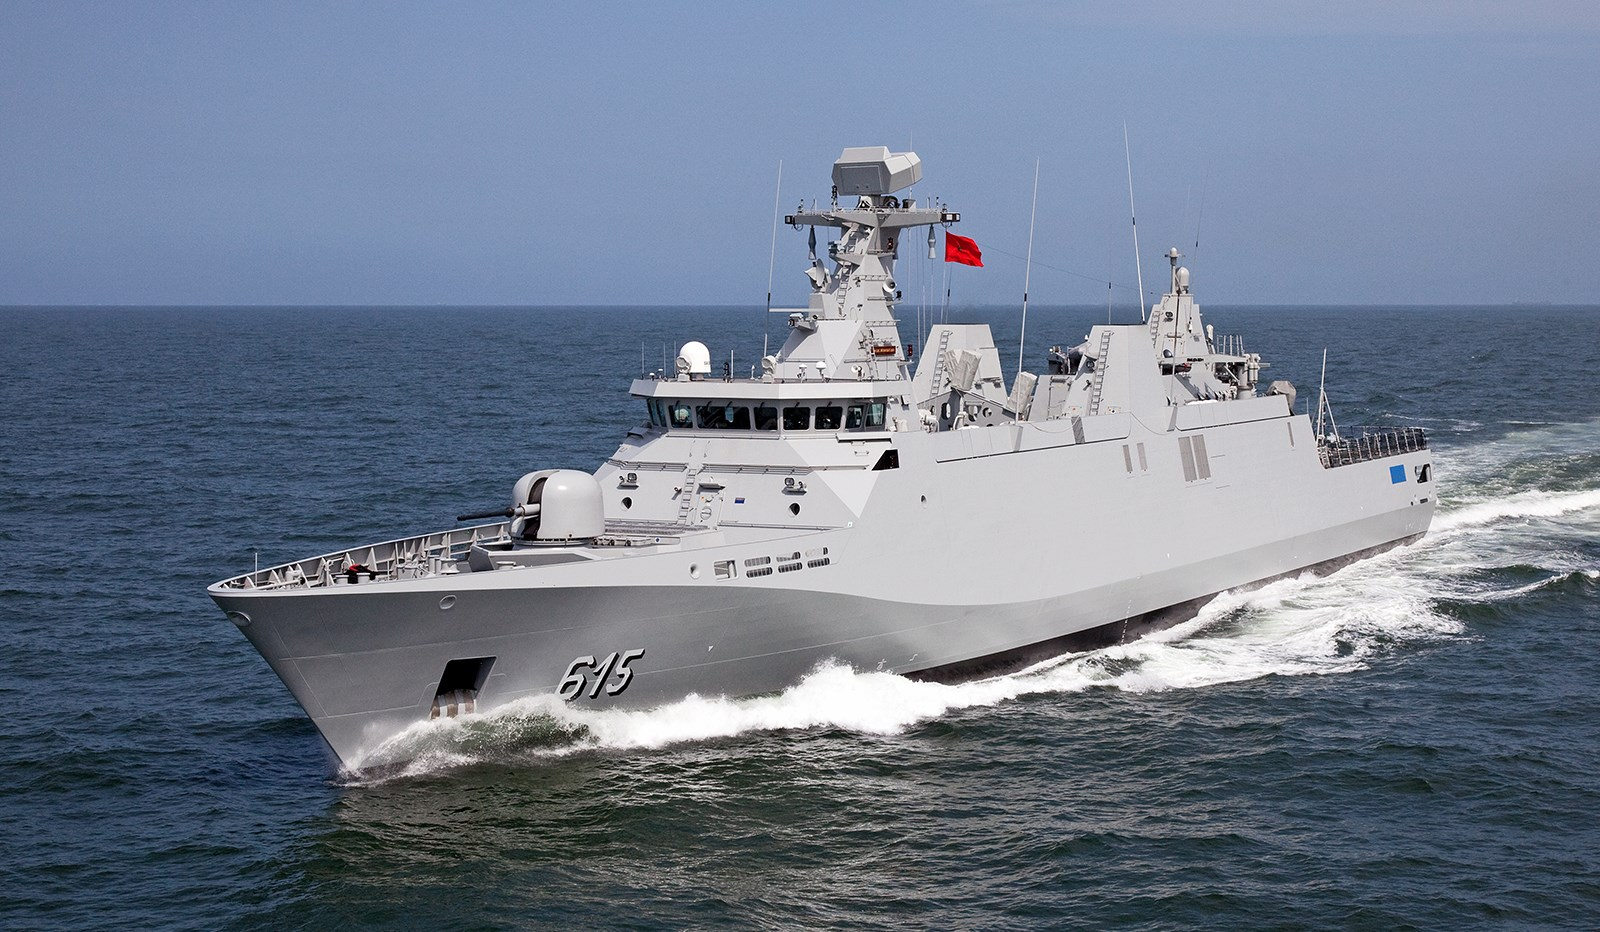 Sigma Class Frigate Ship 9813 For All Maritime Operations